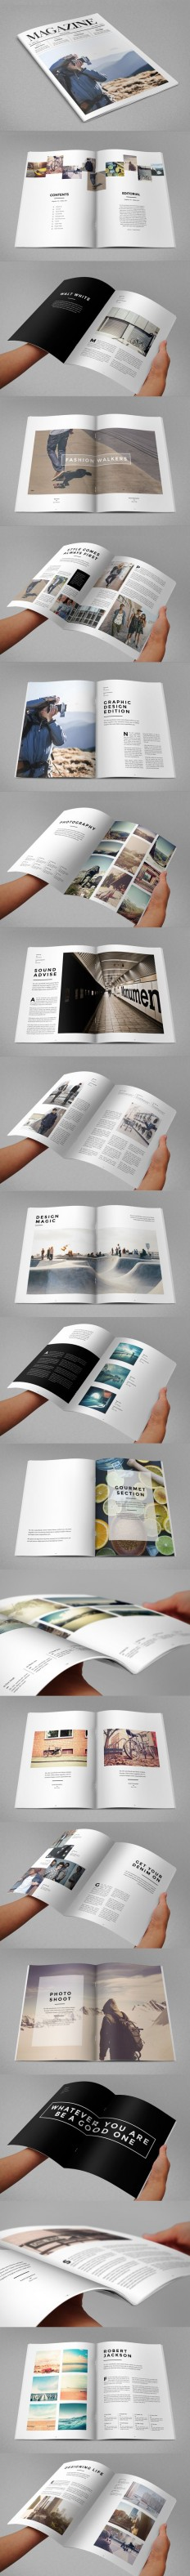 Pin by AbraDesign on Magazines | Pinterest